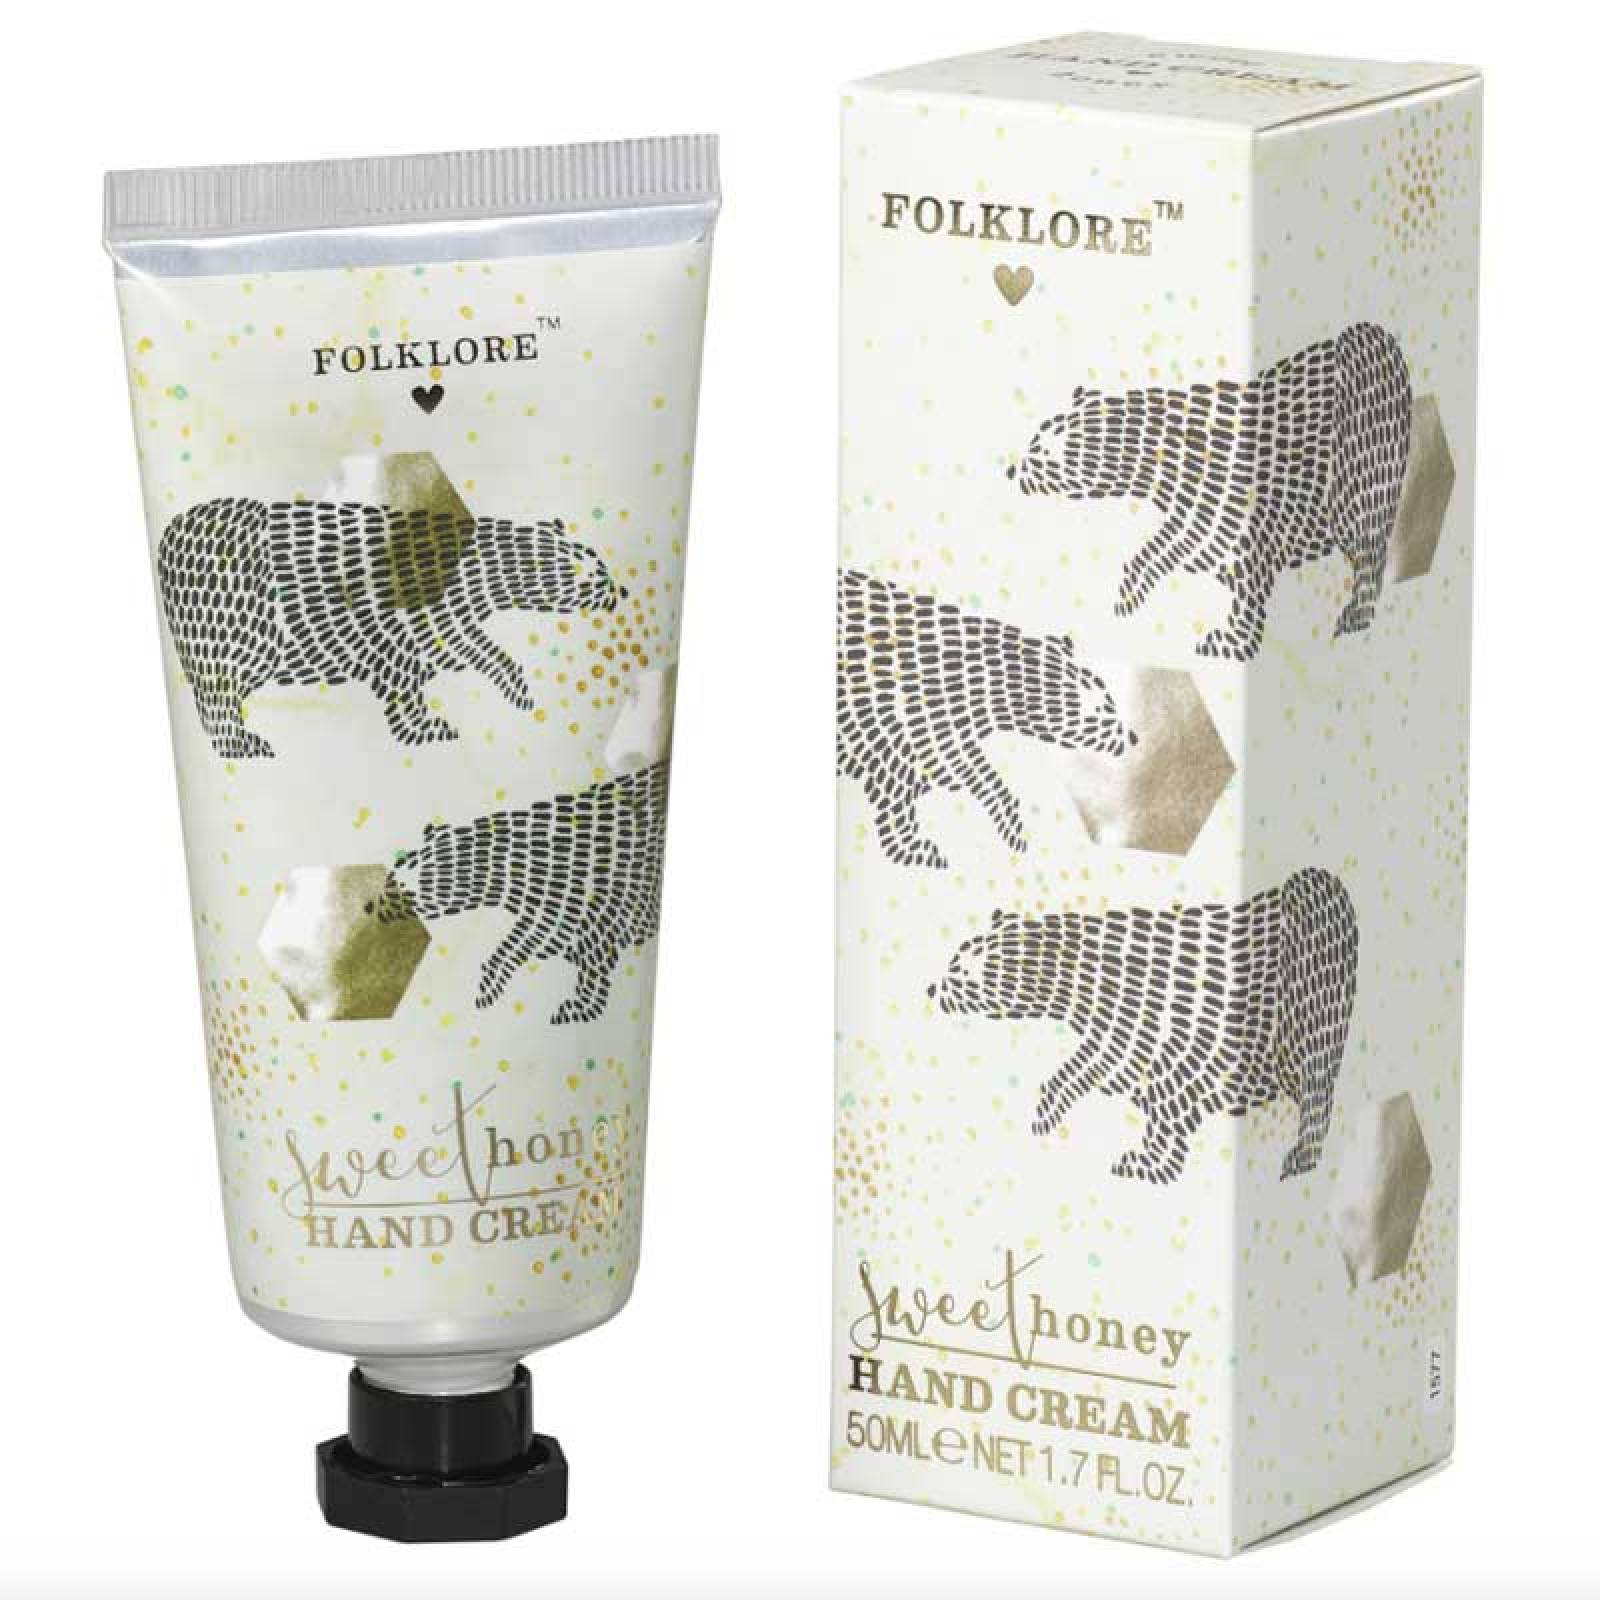 Folklore Bear Handcream Sweet Honey